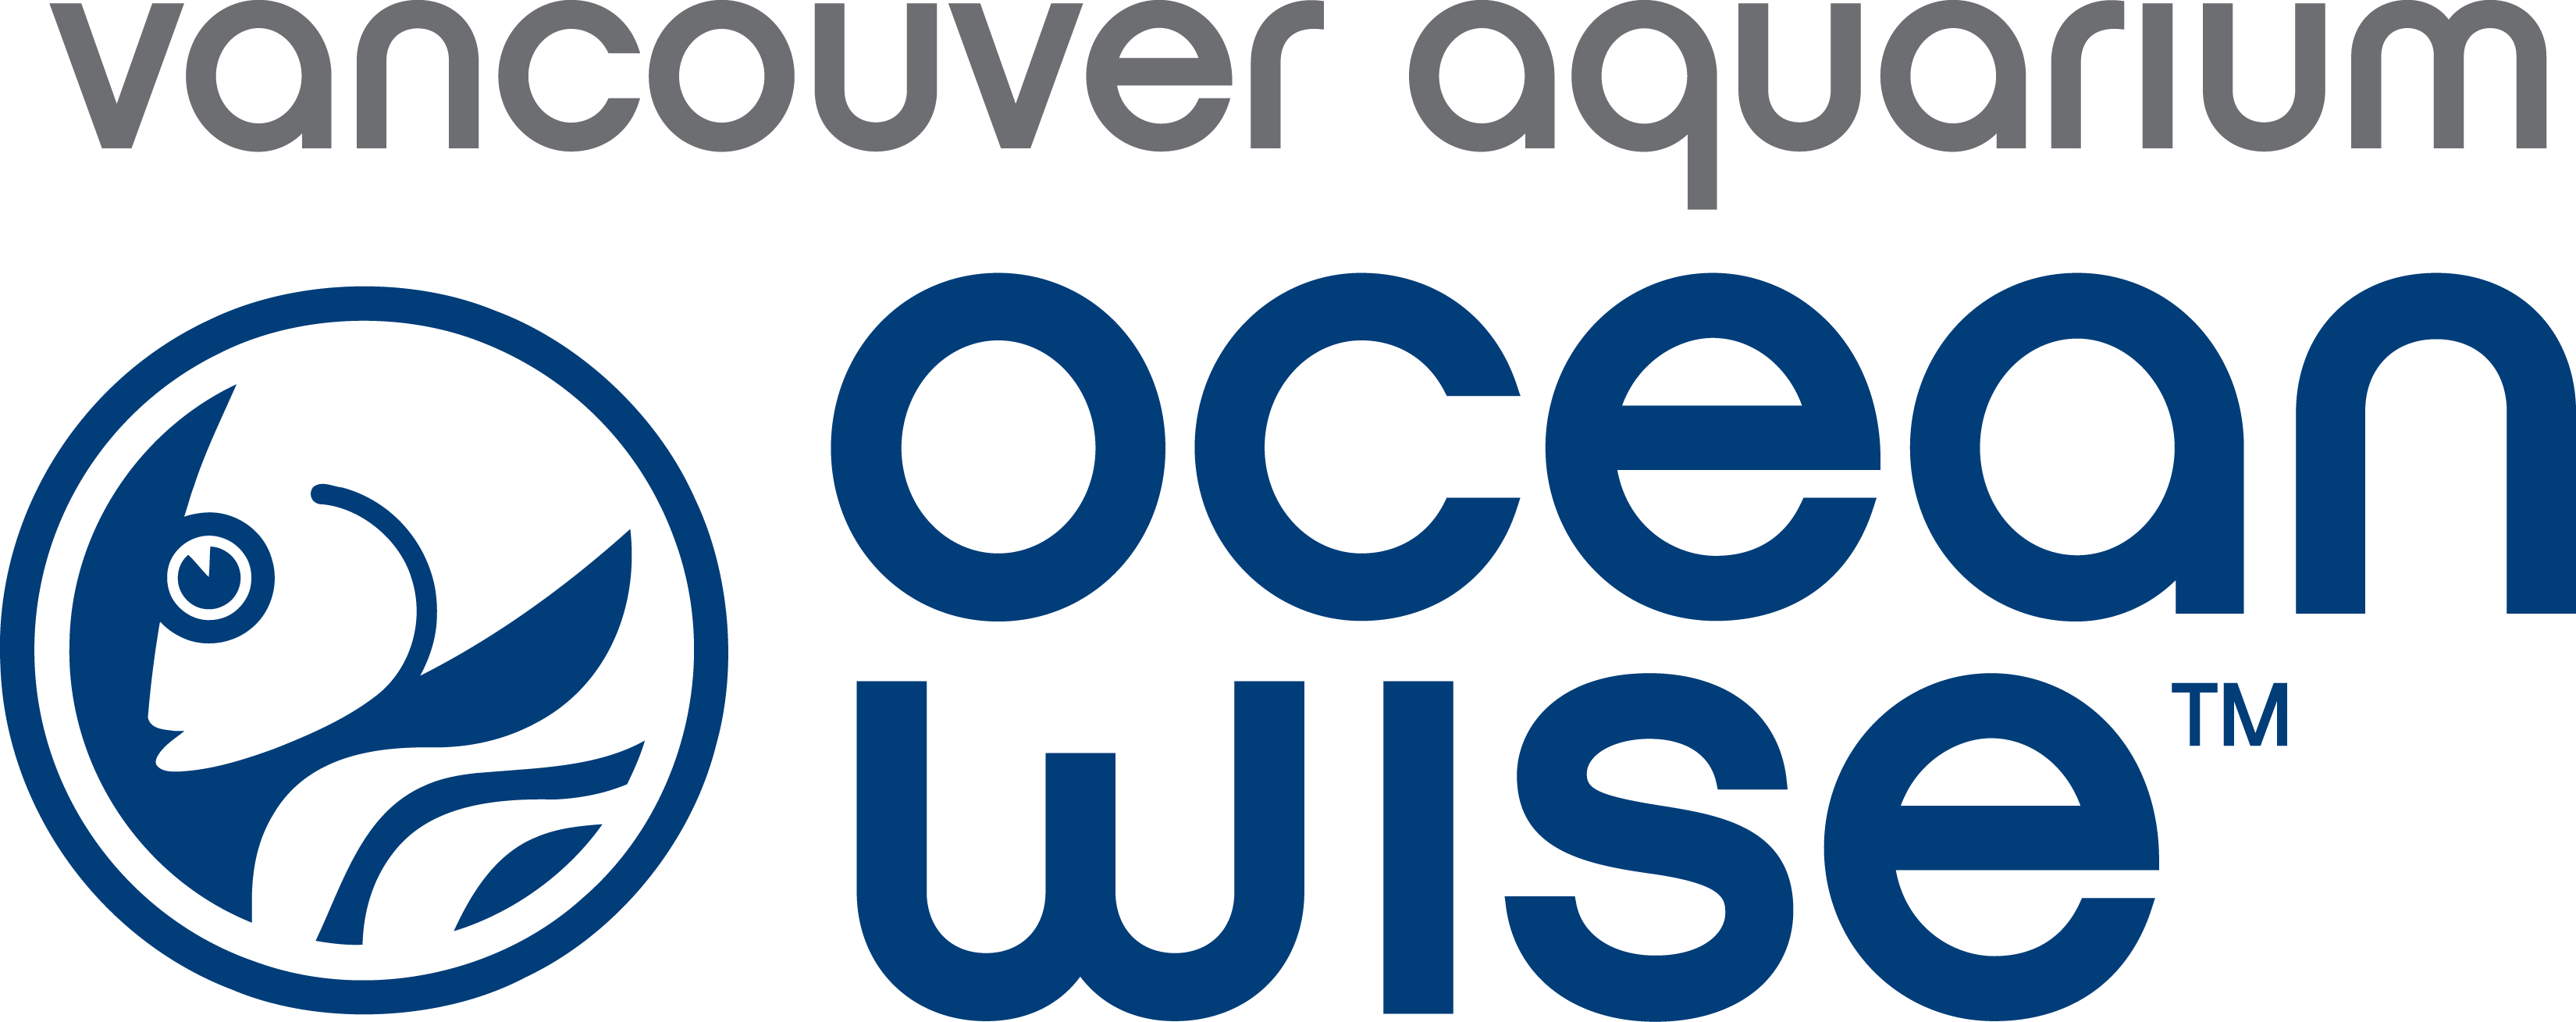 ow_program_logo_blue